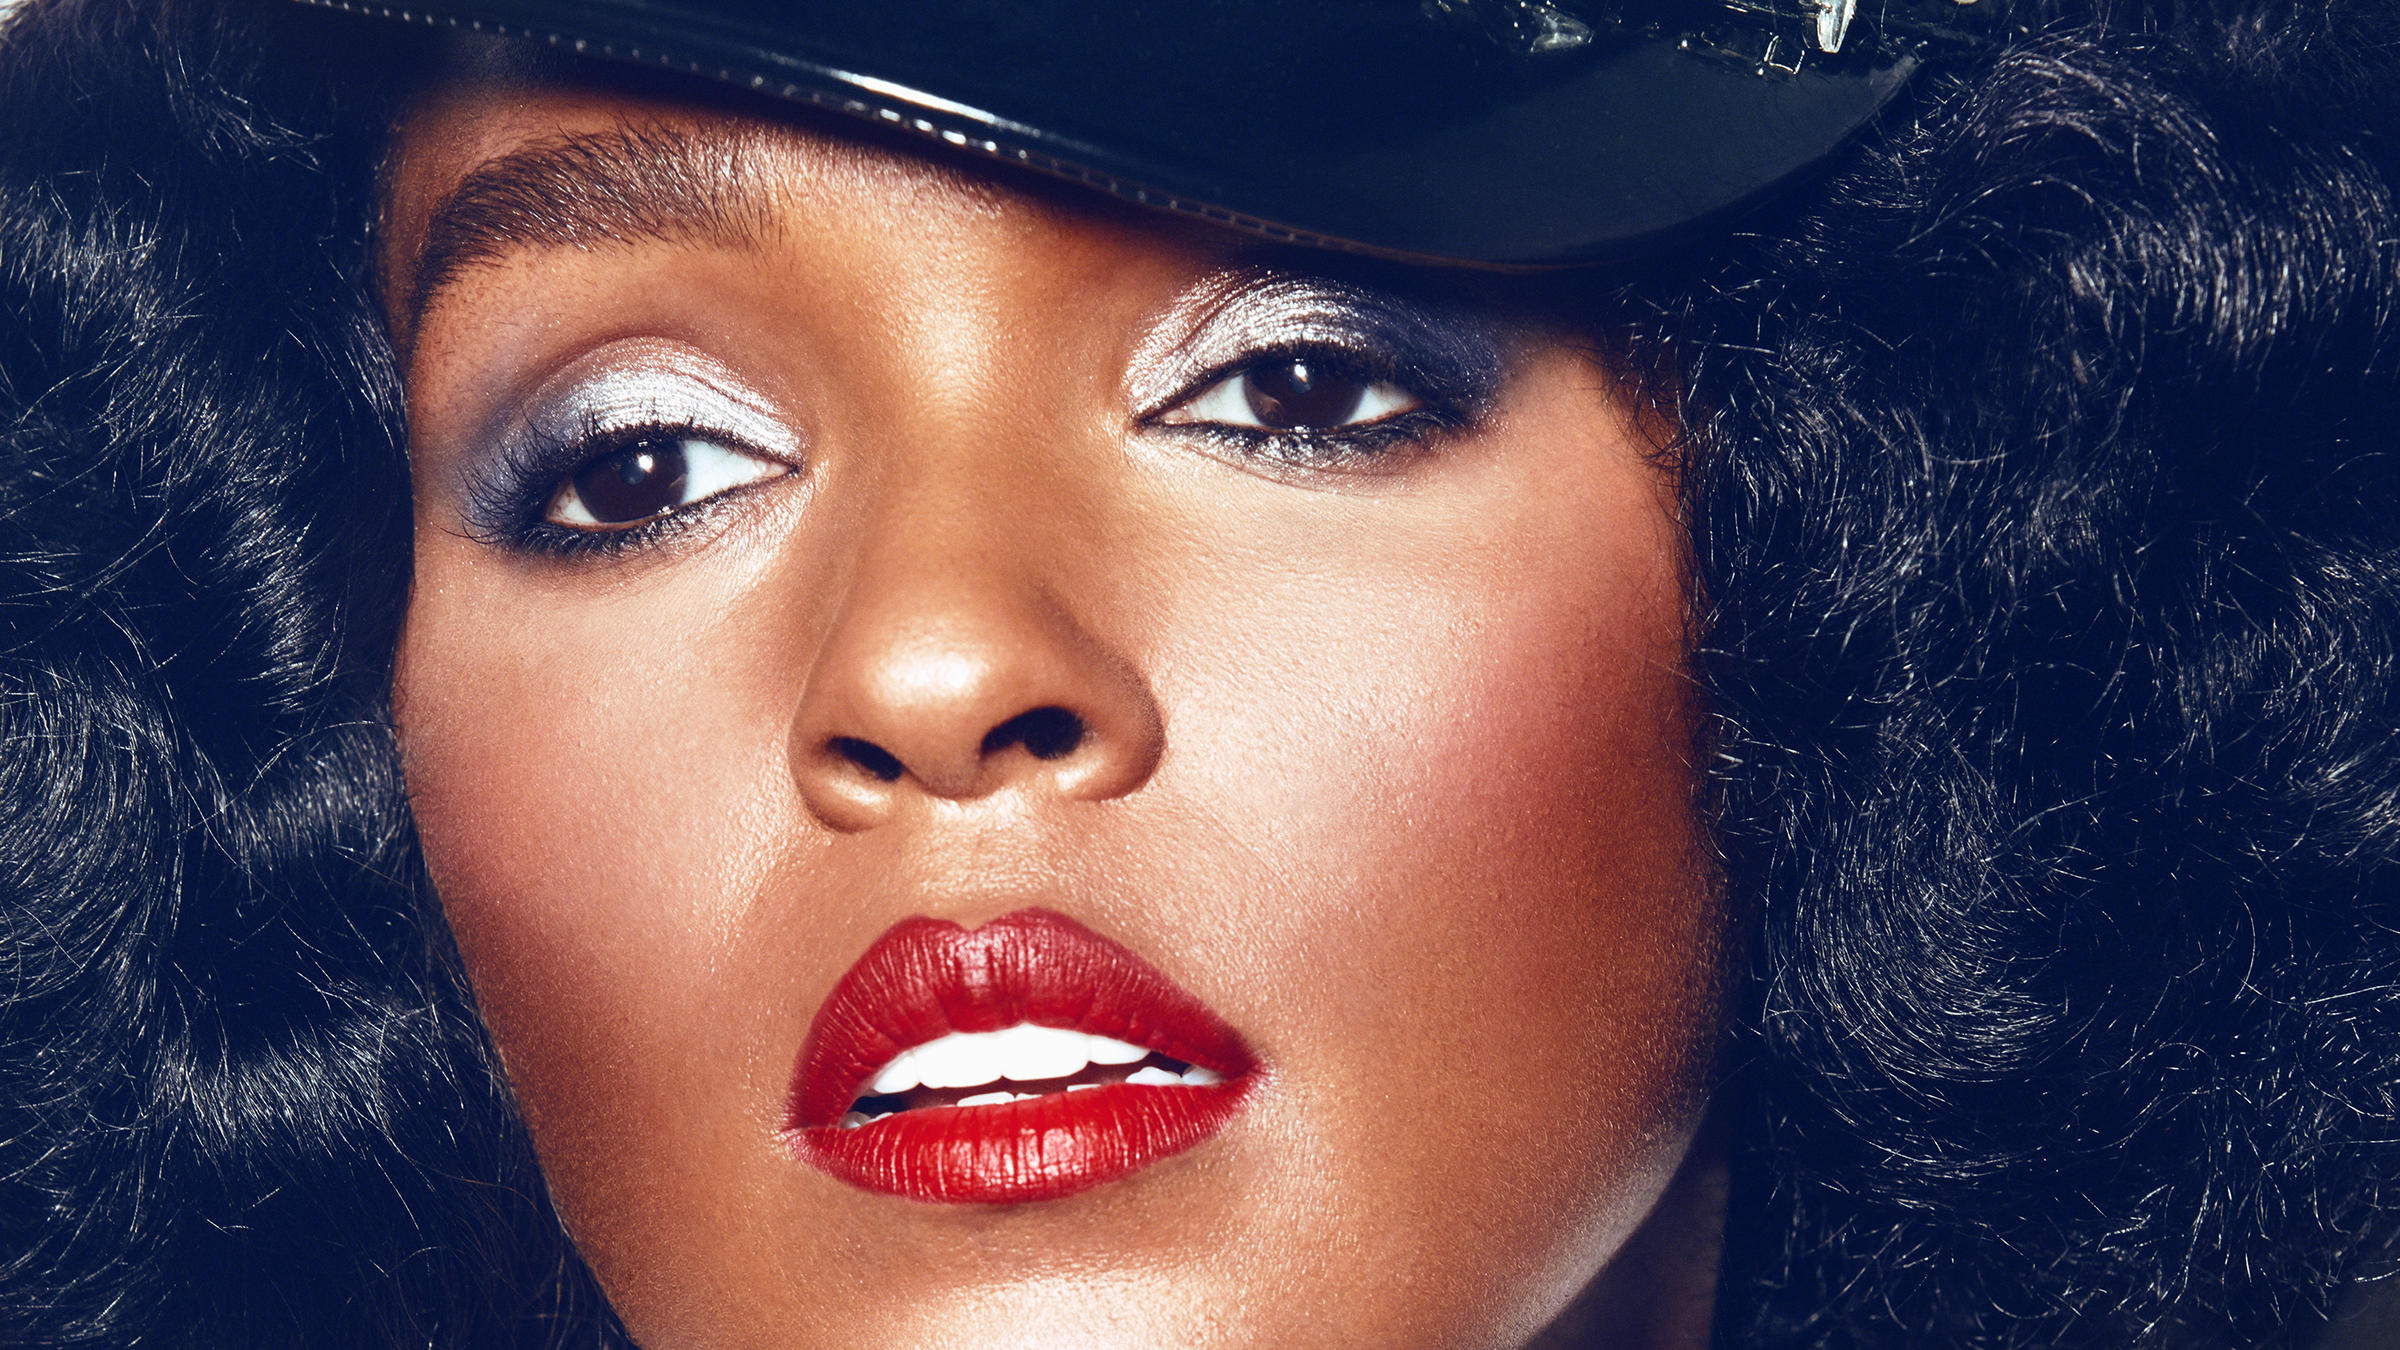 Janelle Monae Plotting Return With New Album 'Dirty Computer'